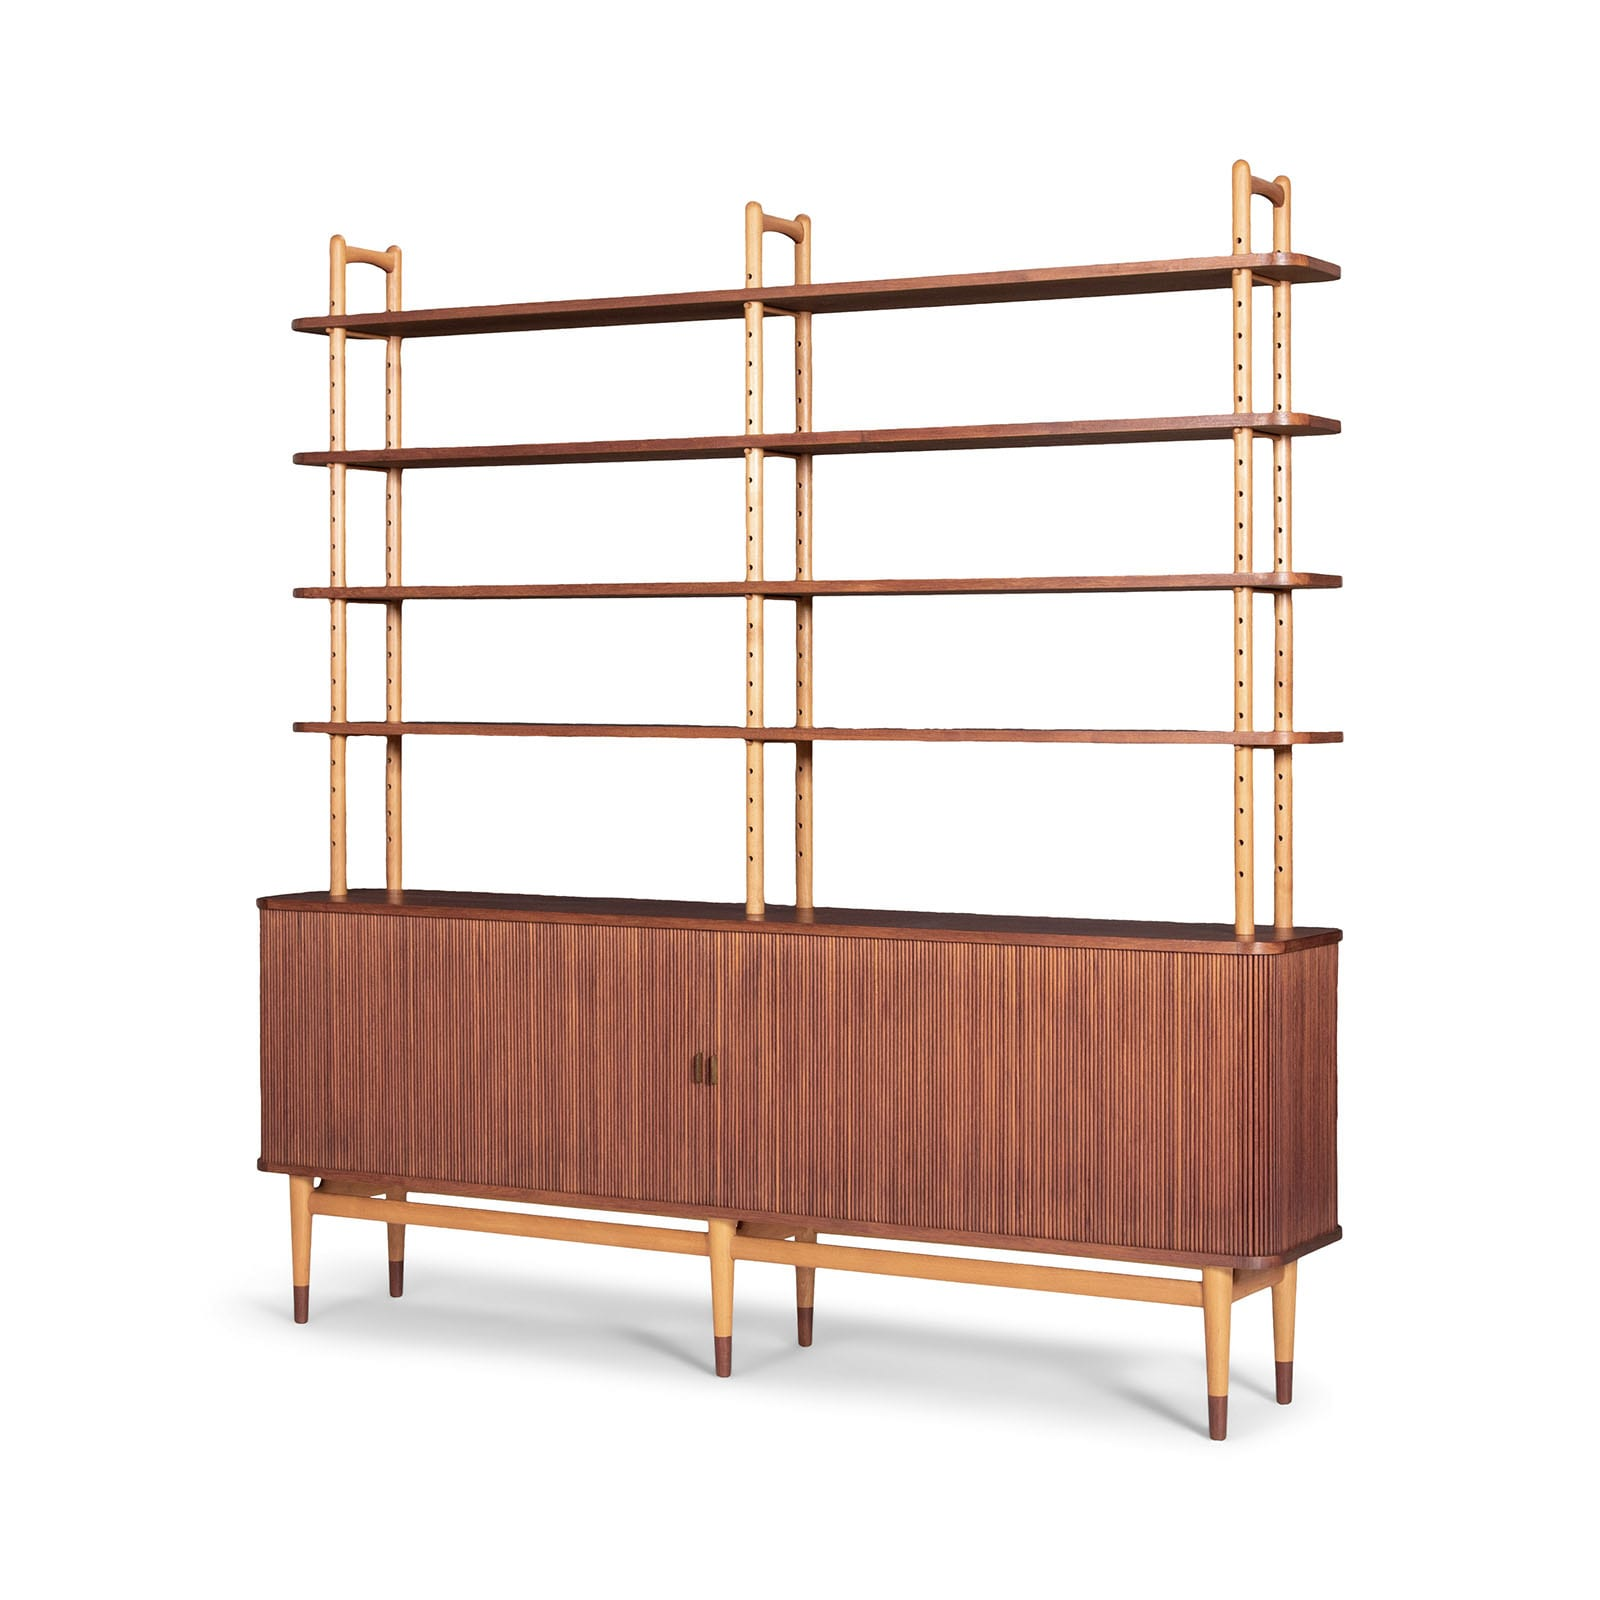 A cabinet with attached shelves